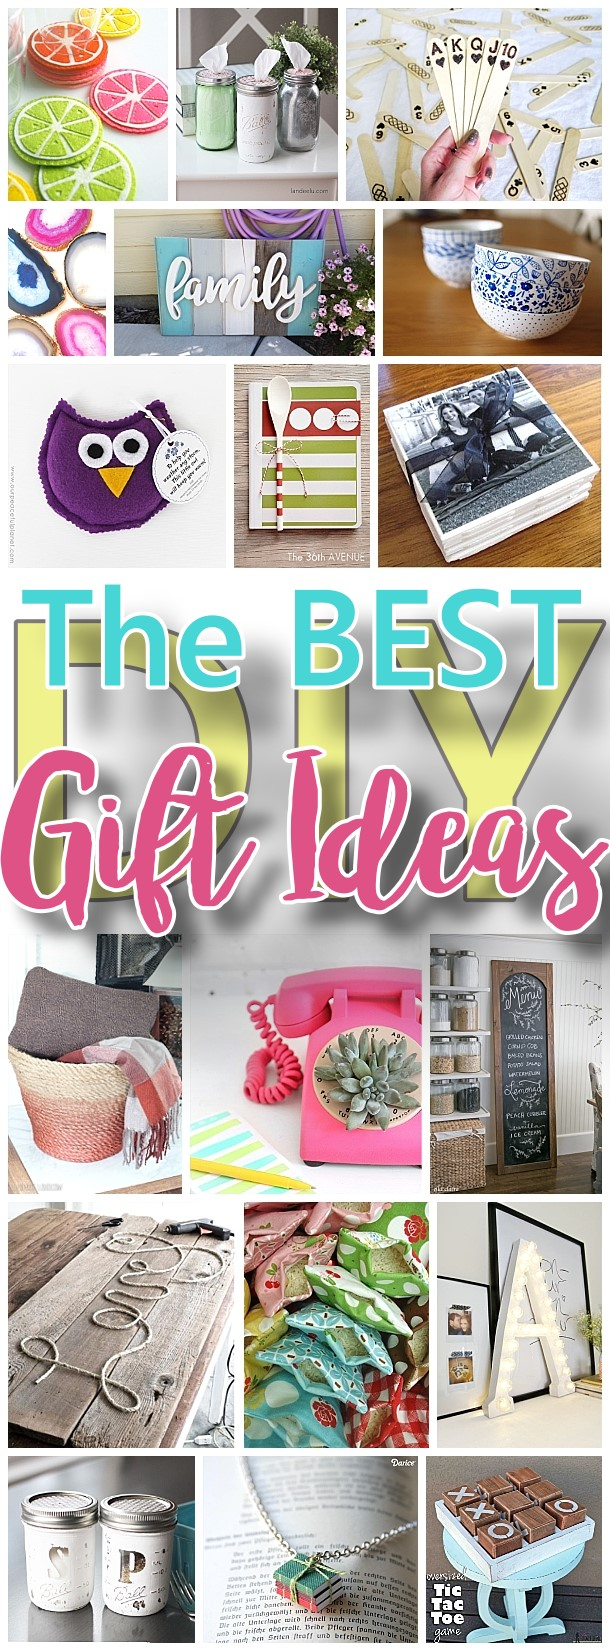 The Best Do It Yourself Gifts Fun Clever And Unique Diy Craft Projects And Ideas For Christmas Birthdays Thank You Or Any Occasion Dreaming In Diy